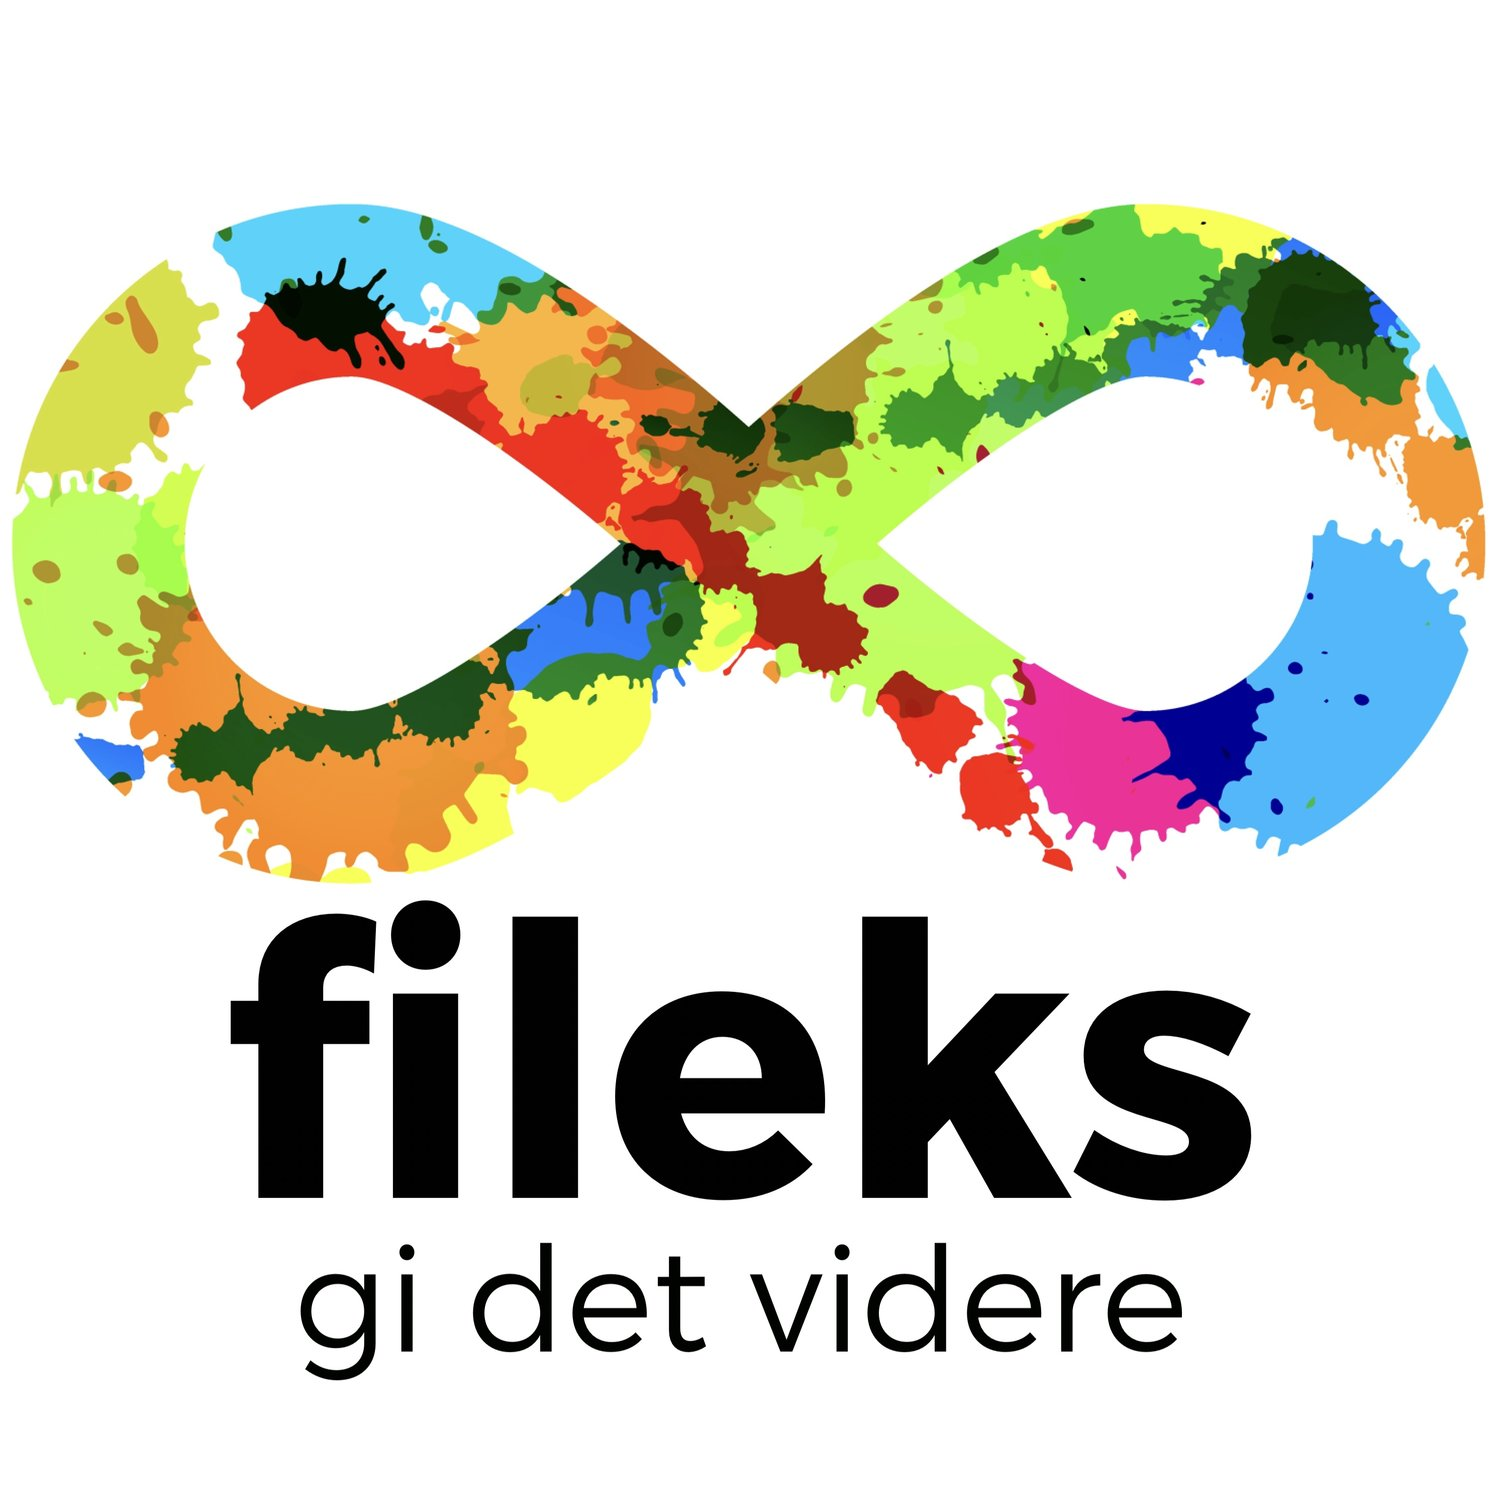 Fileks - gi det videre